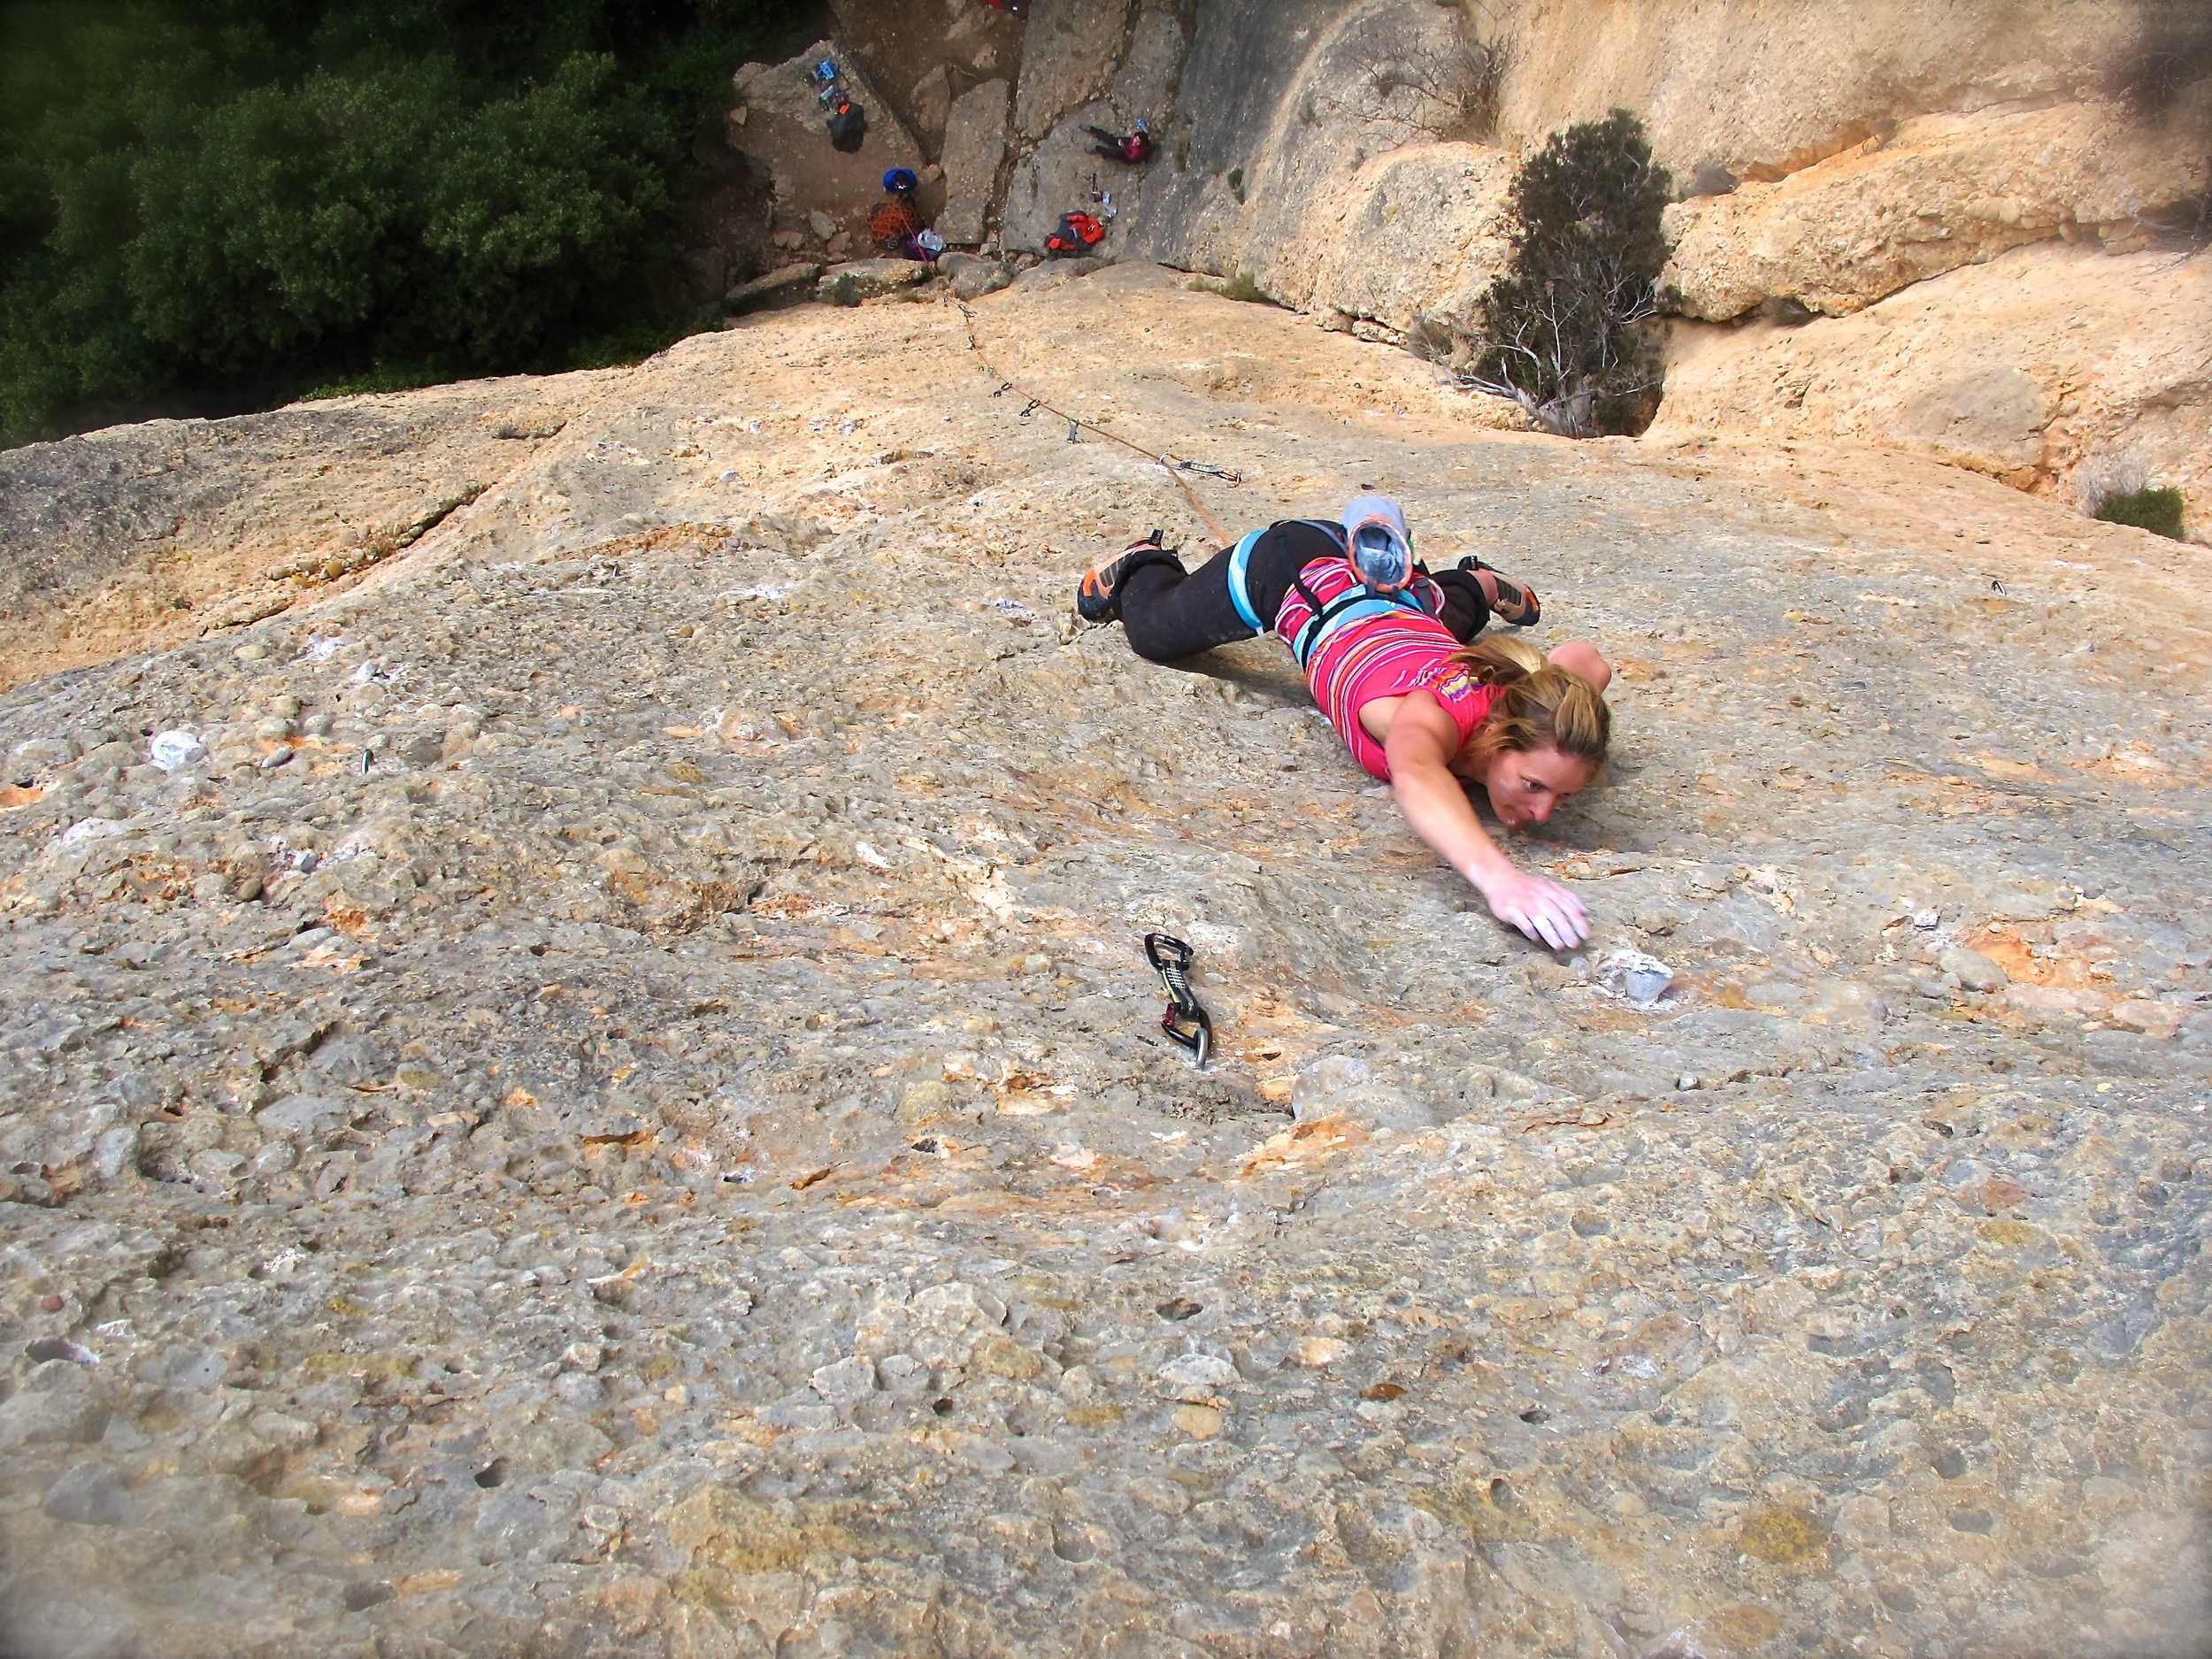 Naomi on-sighting 7a+ at Monstant - all 38 metres of it. Photo by Chris